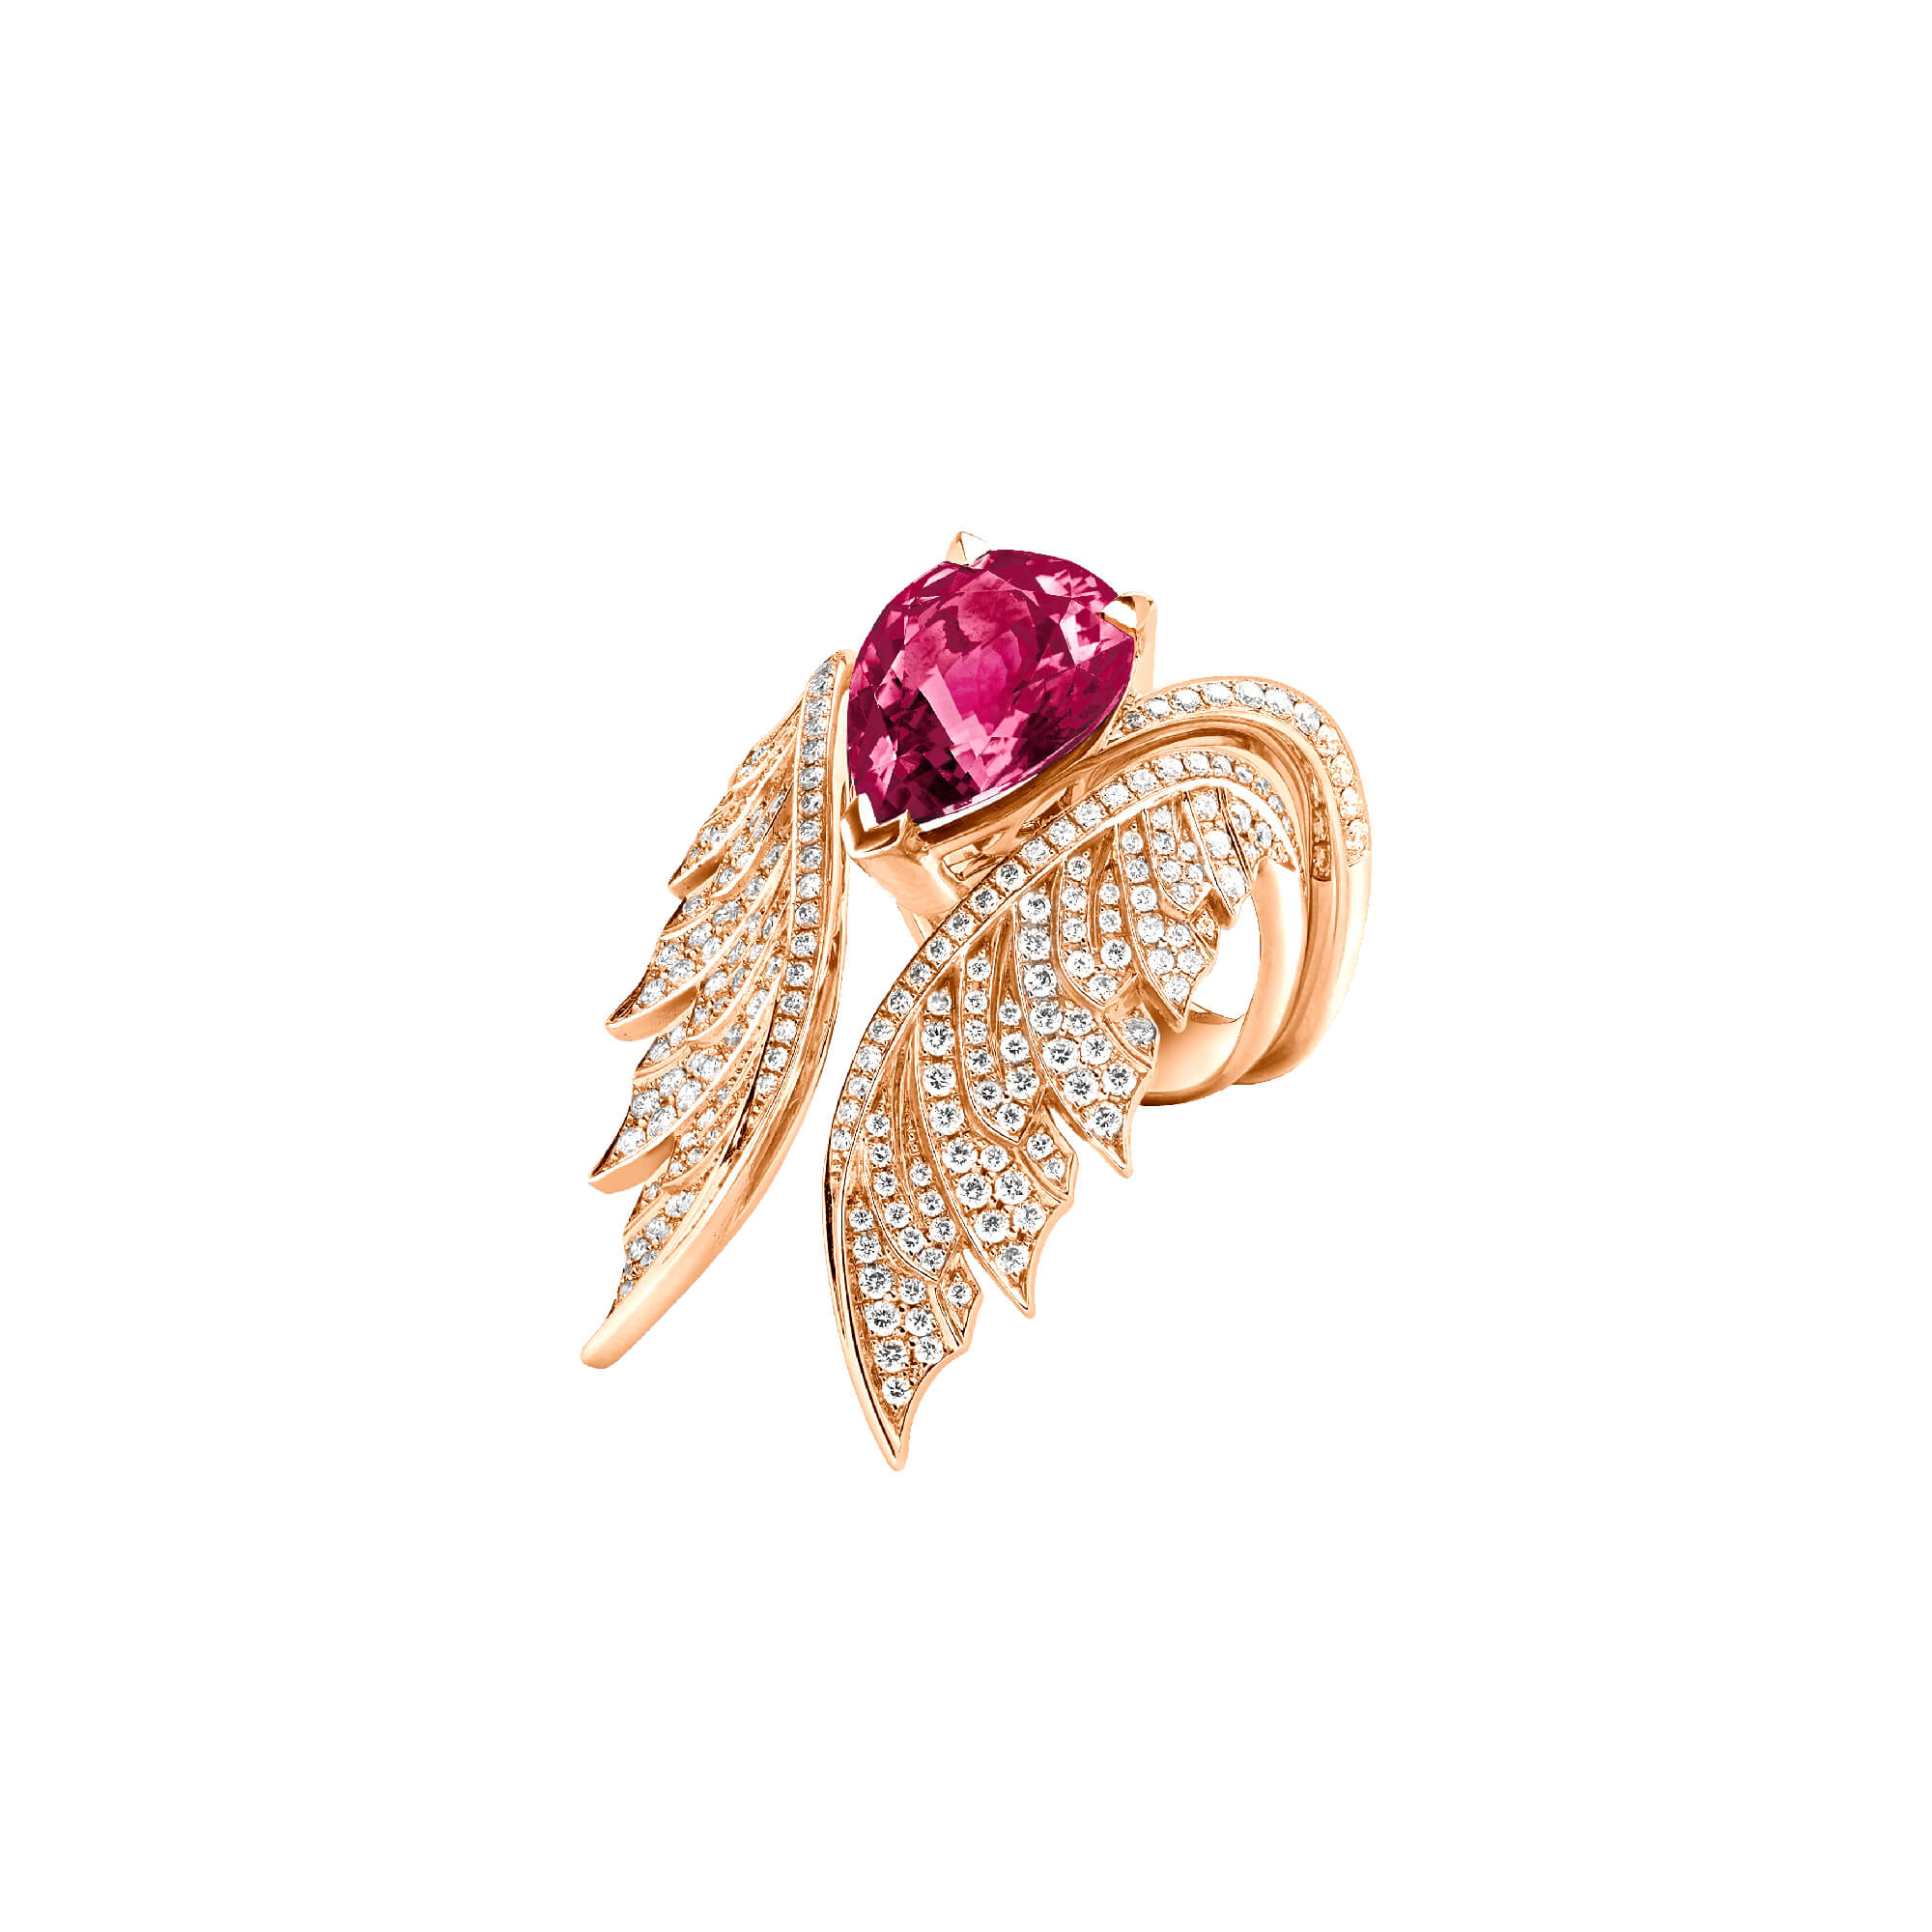 18k Rose Gold Rubellite Cocktail Ring | Magnipheasant